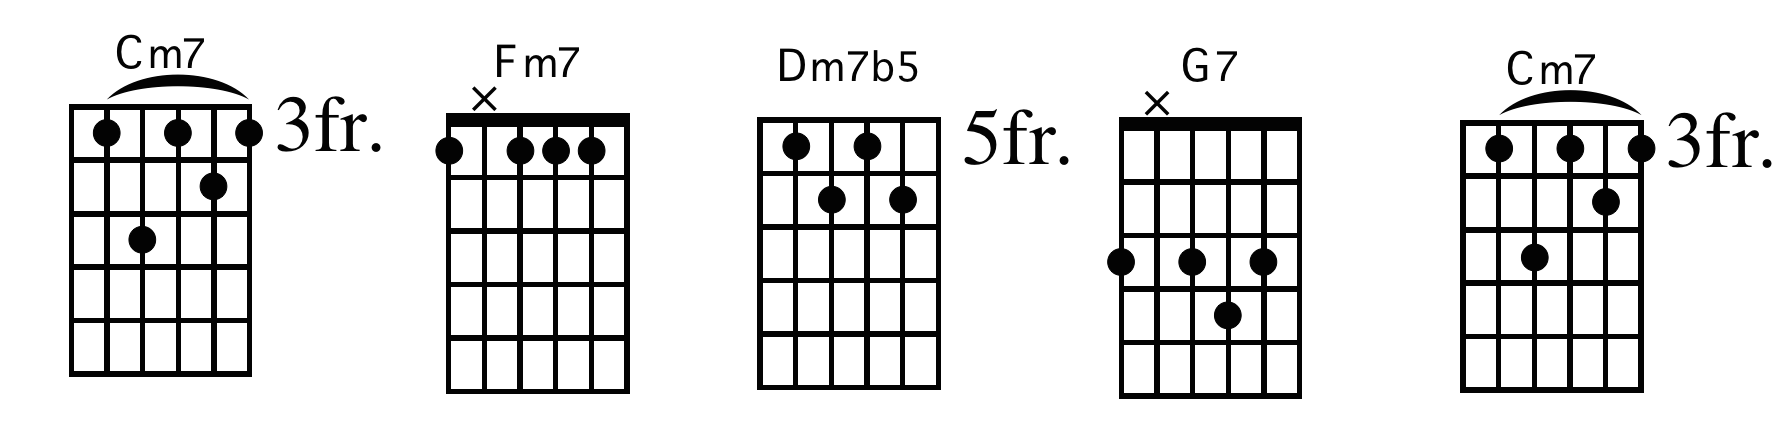 jazz-guitar-practice-routine_2.png